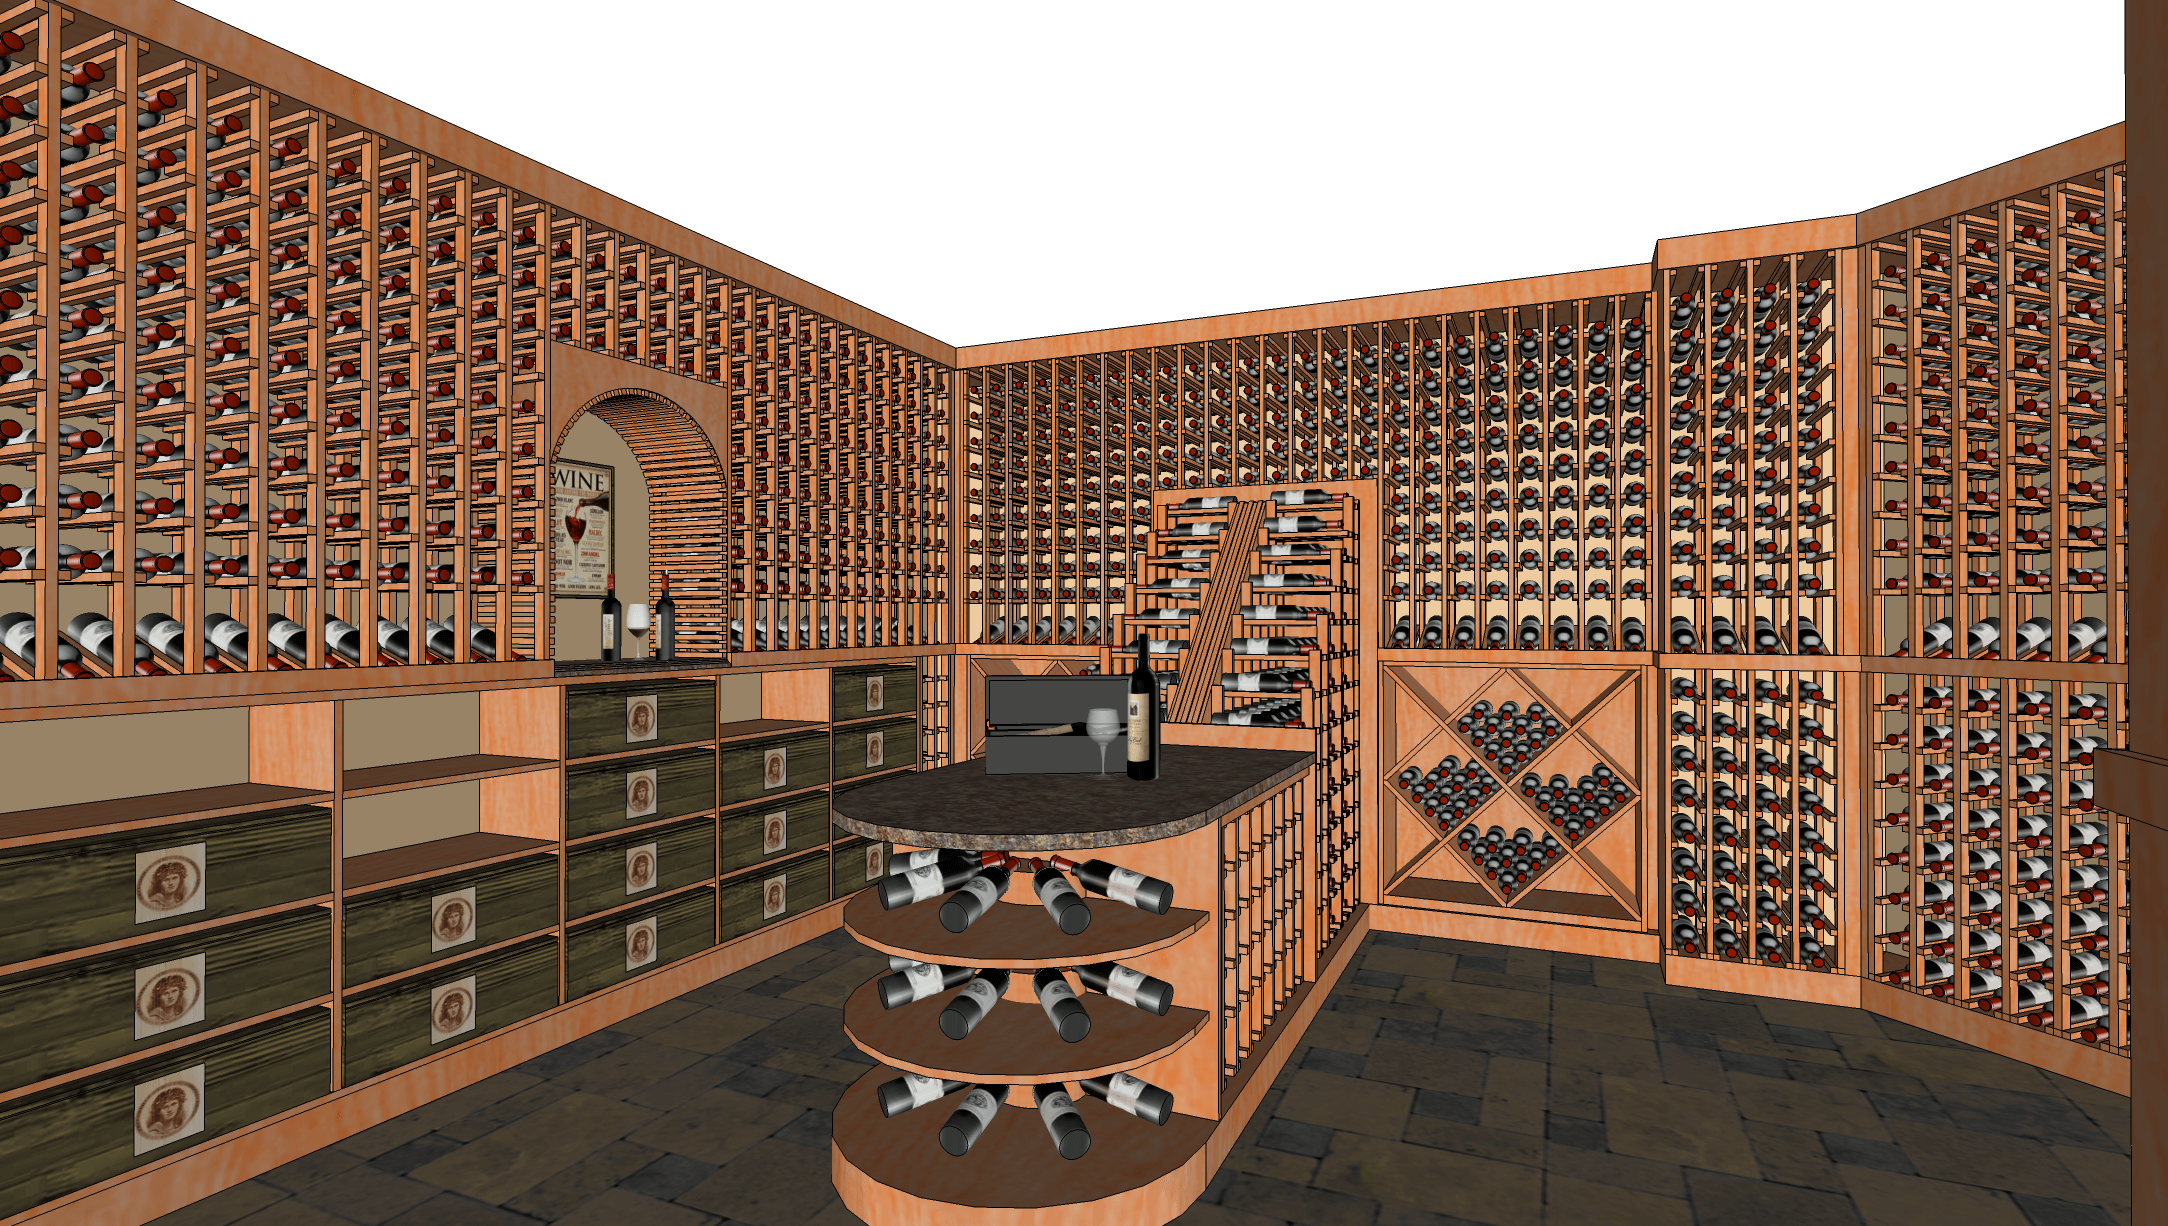 Image showing a Sketchup model of a wine cellar.